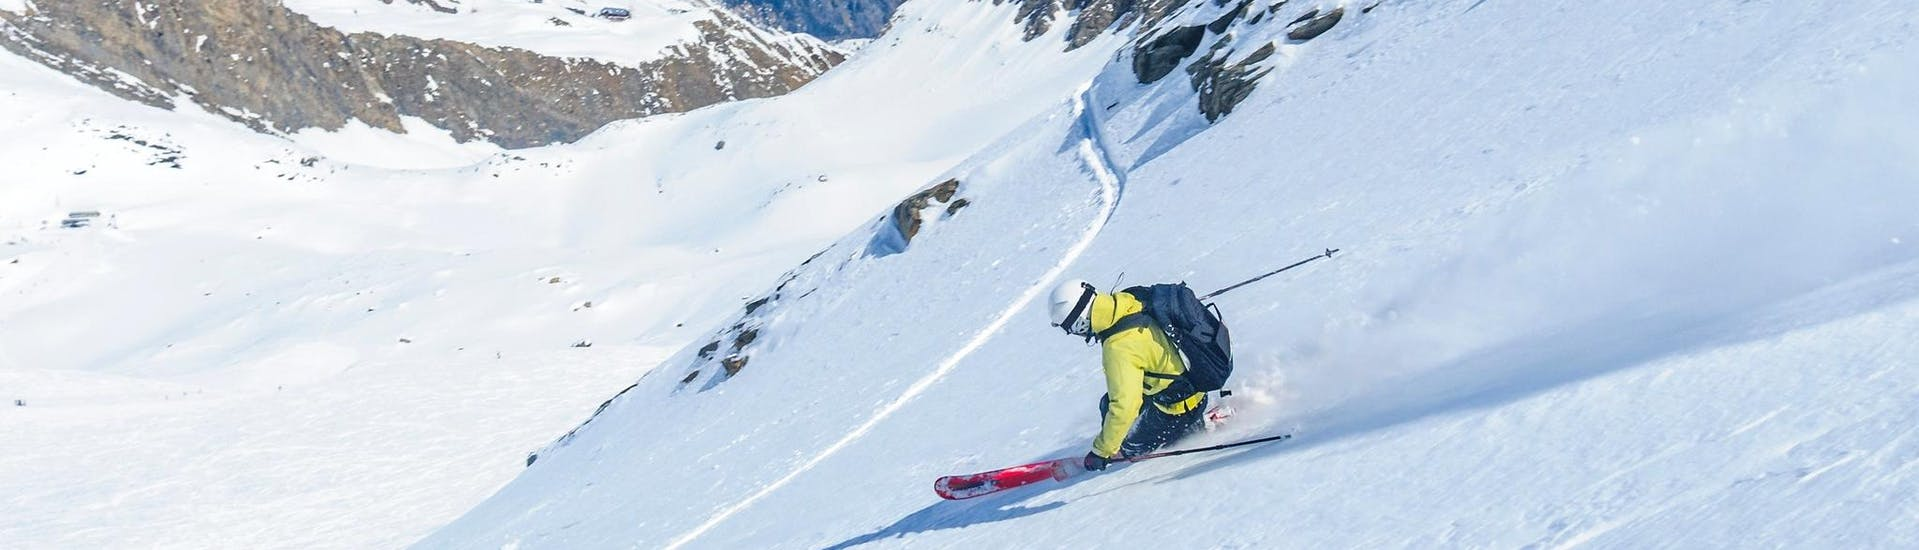 A freeride skier is skiing through the powder snow during one of the Freeriding Private for Adults – All Levels organised by Swiss Ski School Klosters.